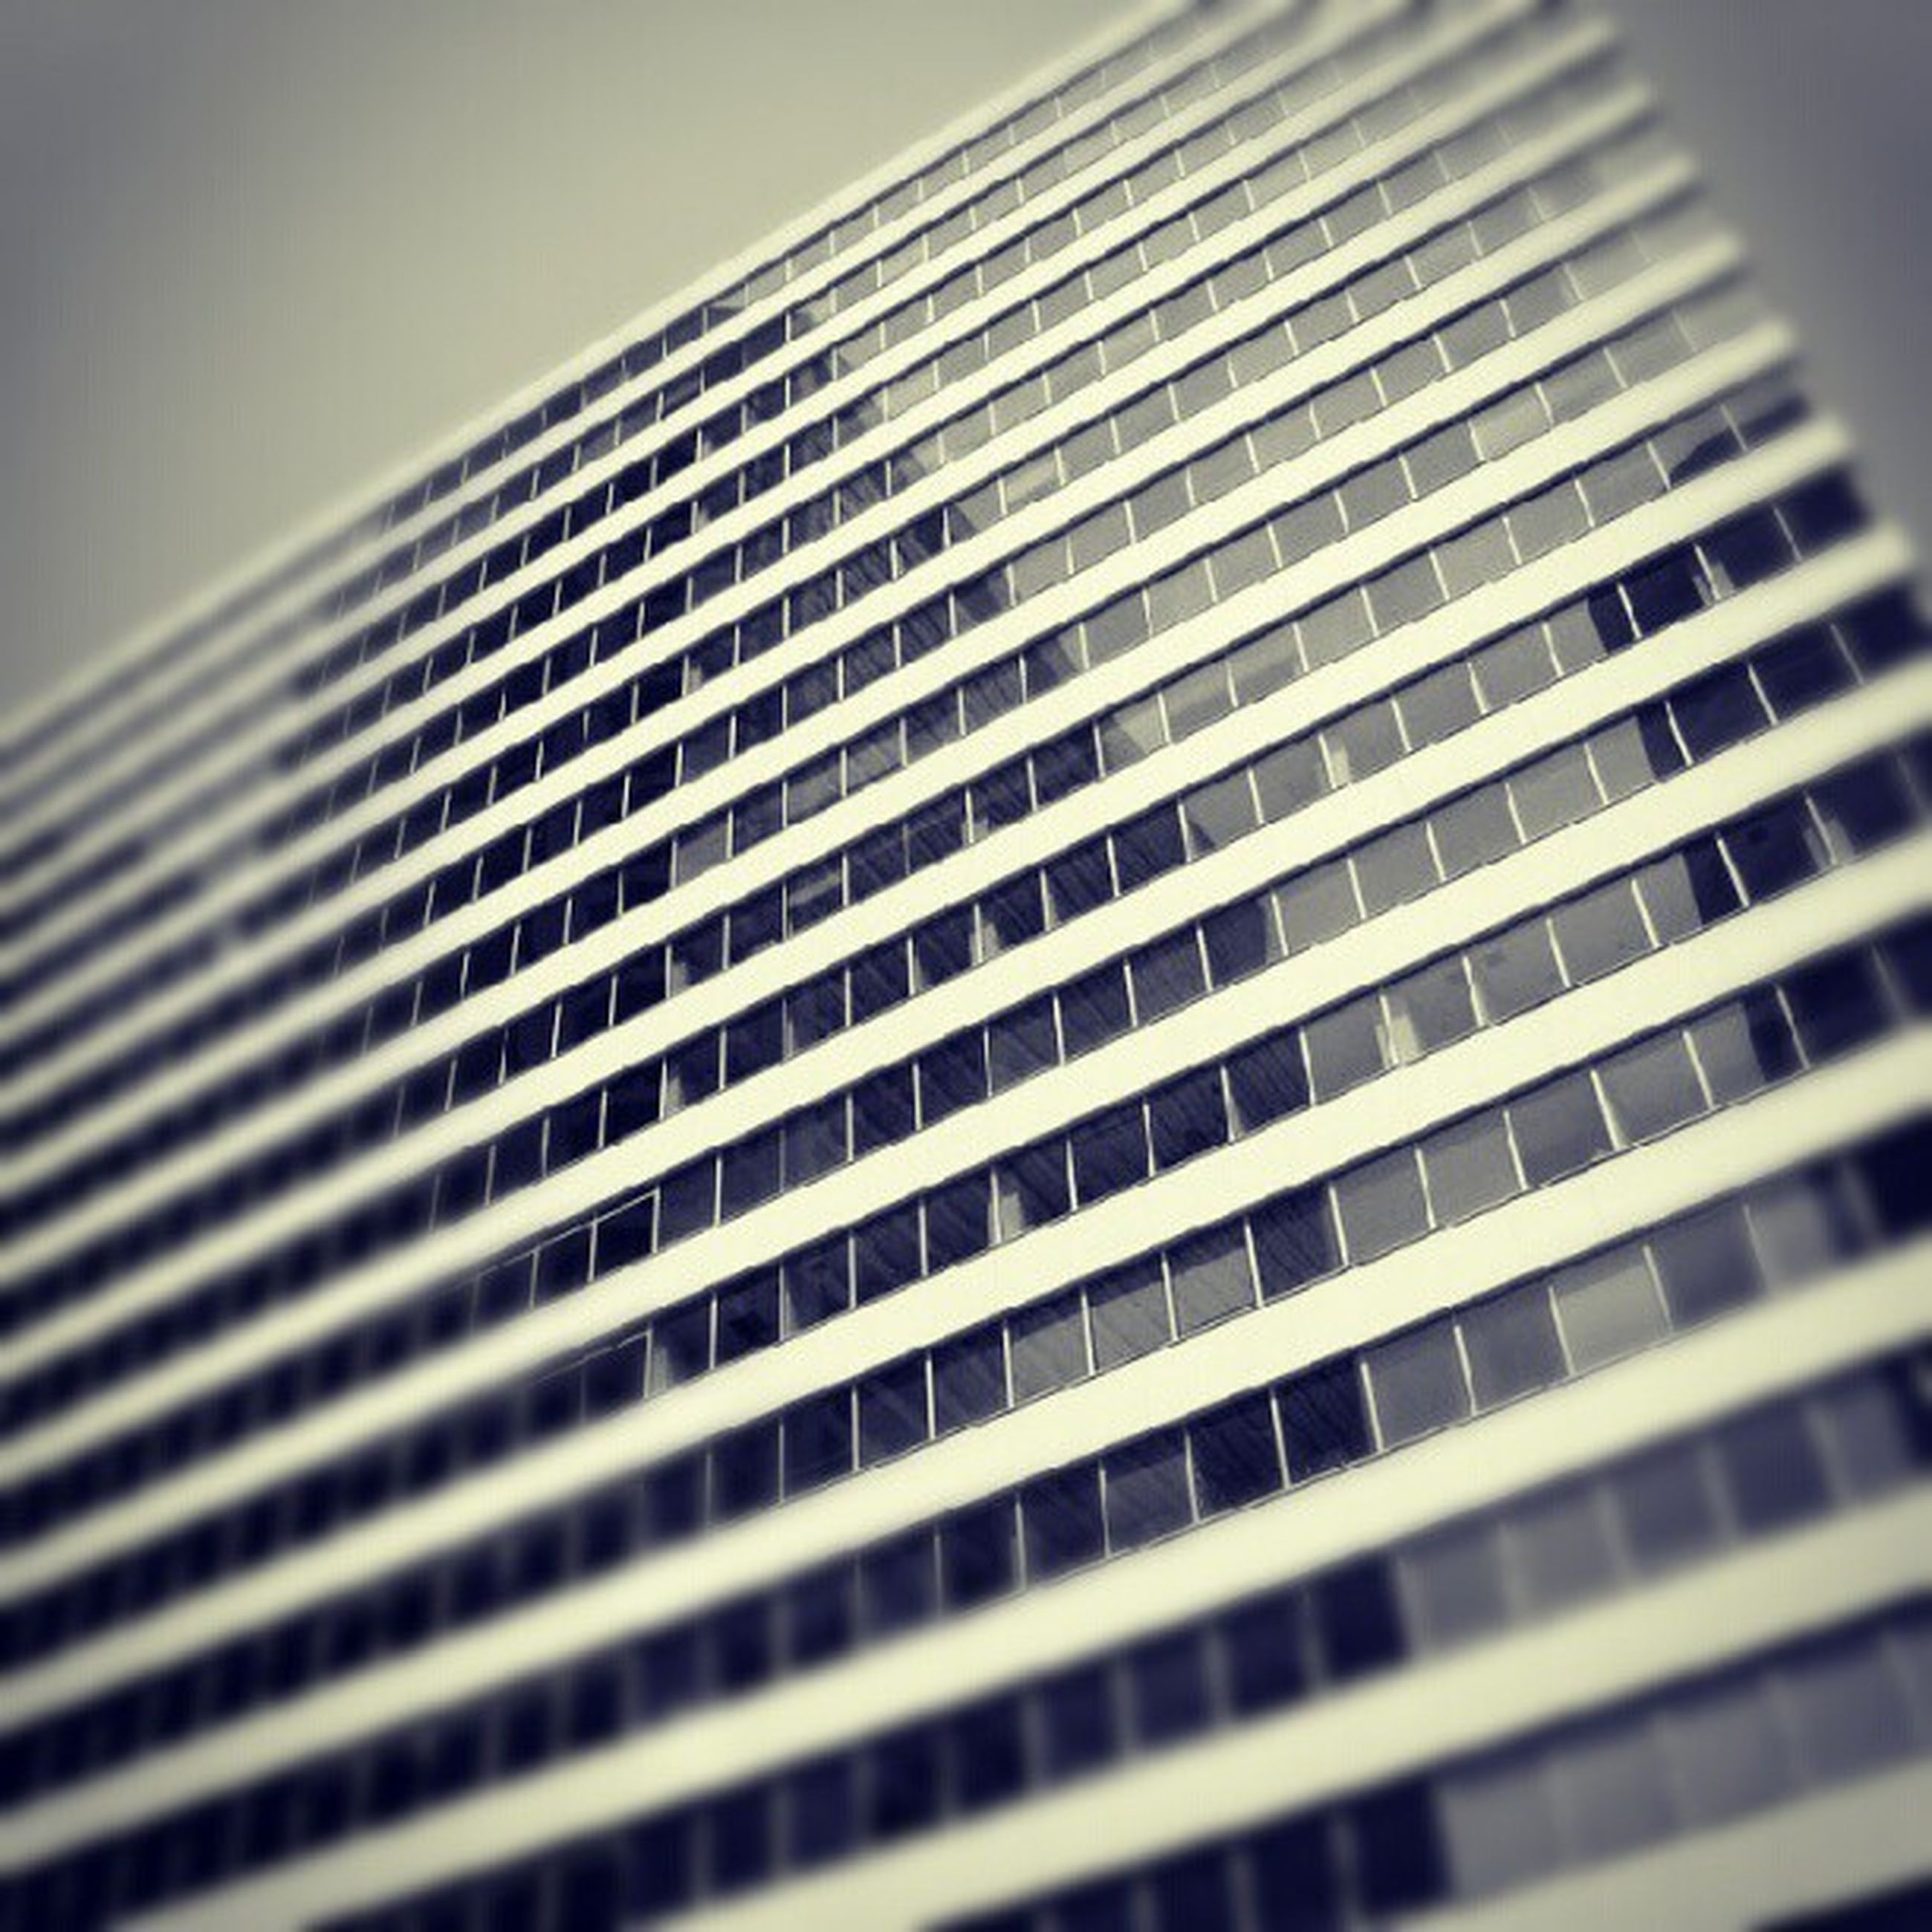 architecture, built structure, building exterior, pattern, low angle view, window, repetition, indoors, modern, building, office building, close-up, no people, full frame, blinds, backgrounds, selective focus, day, in a row, skyscraper